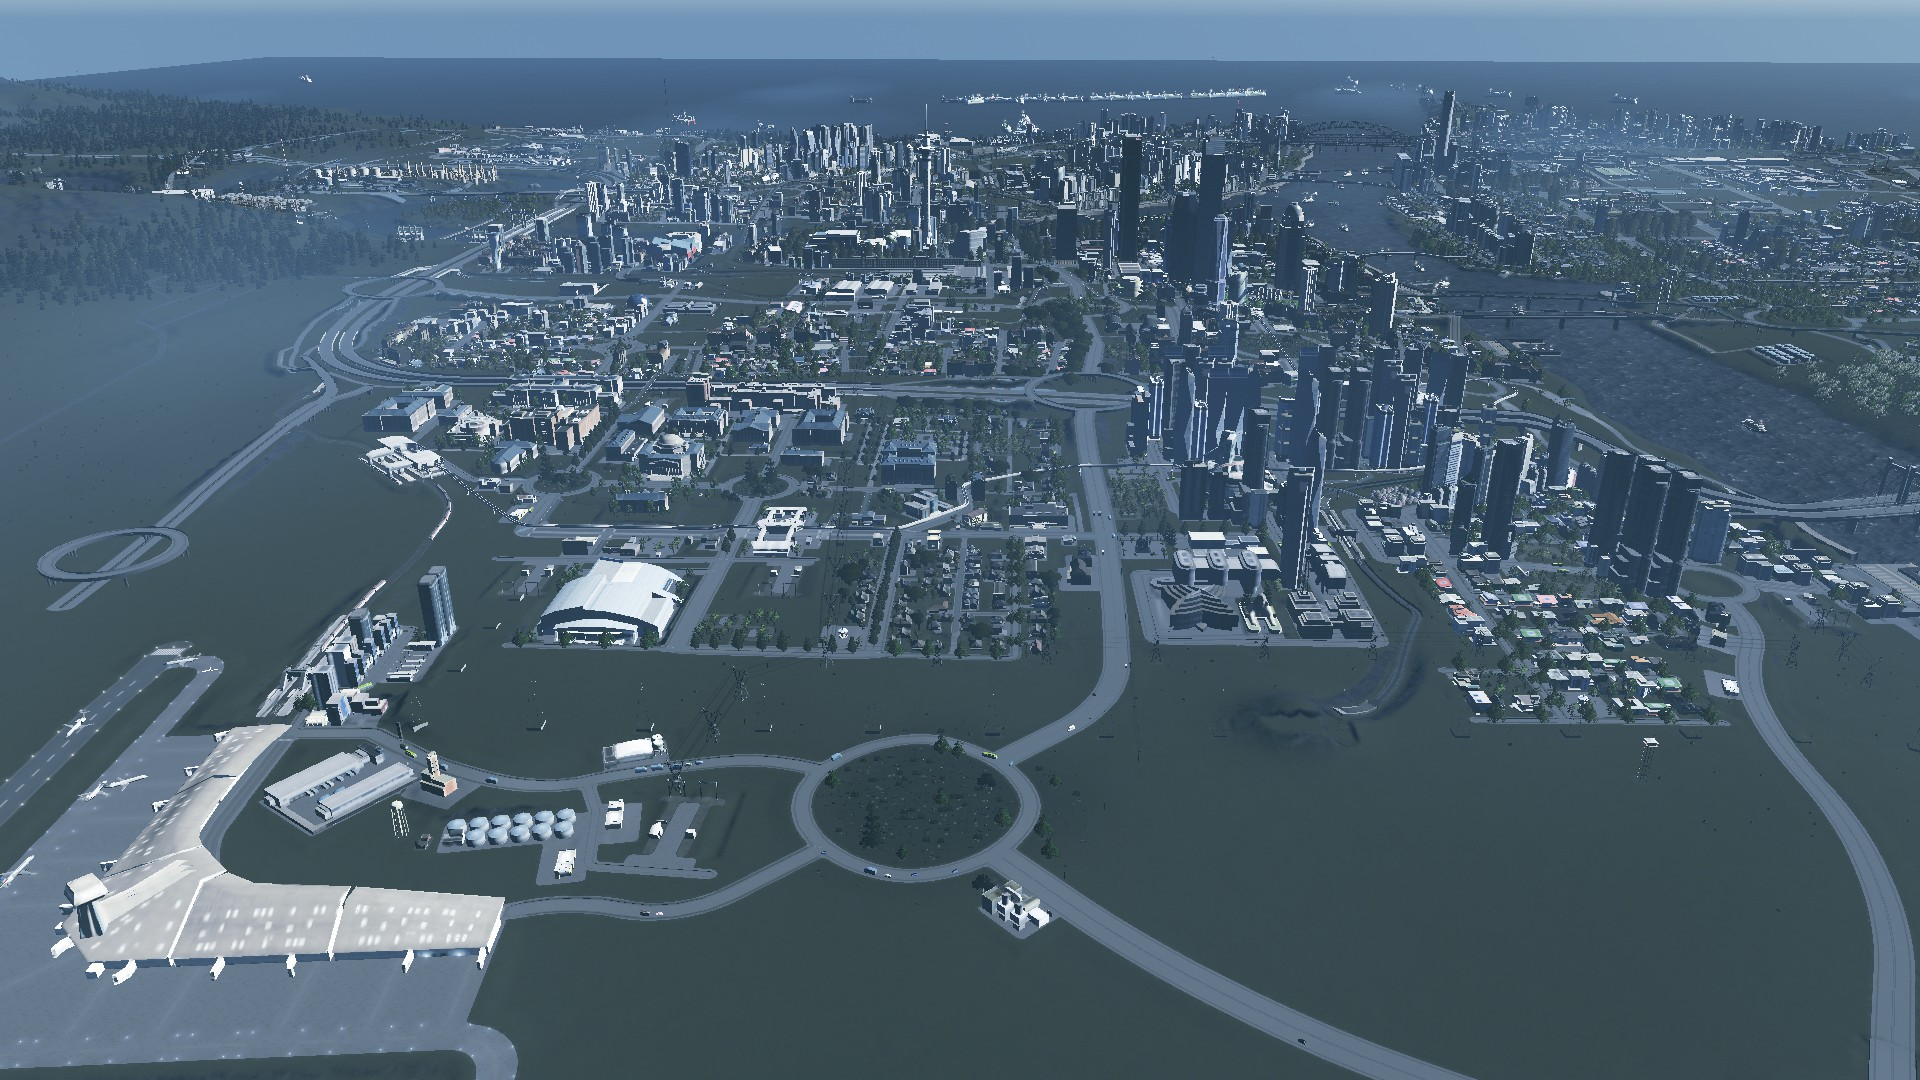 FEE FREE UNIVERSITY STUDY: #CitiesSkylines Campus DLC: A First Look with the University of Manukau